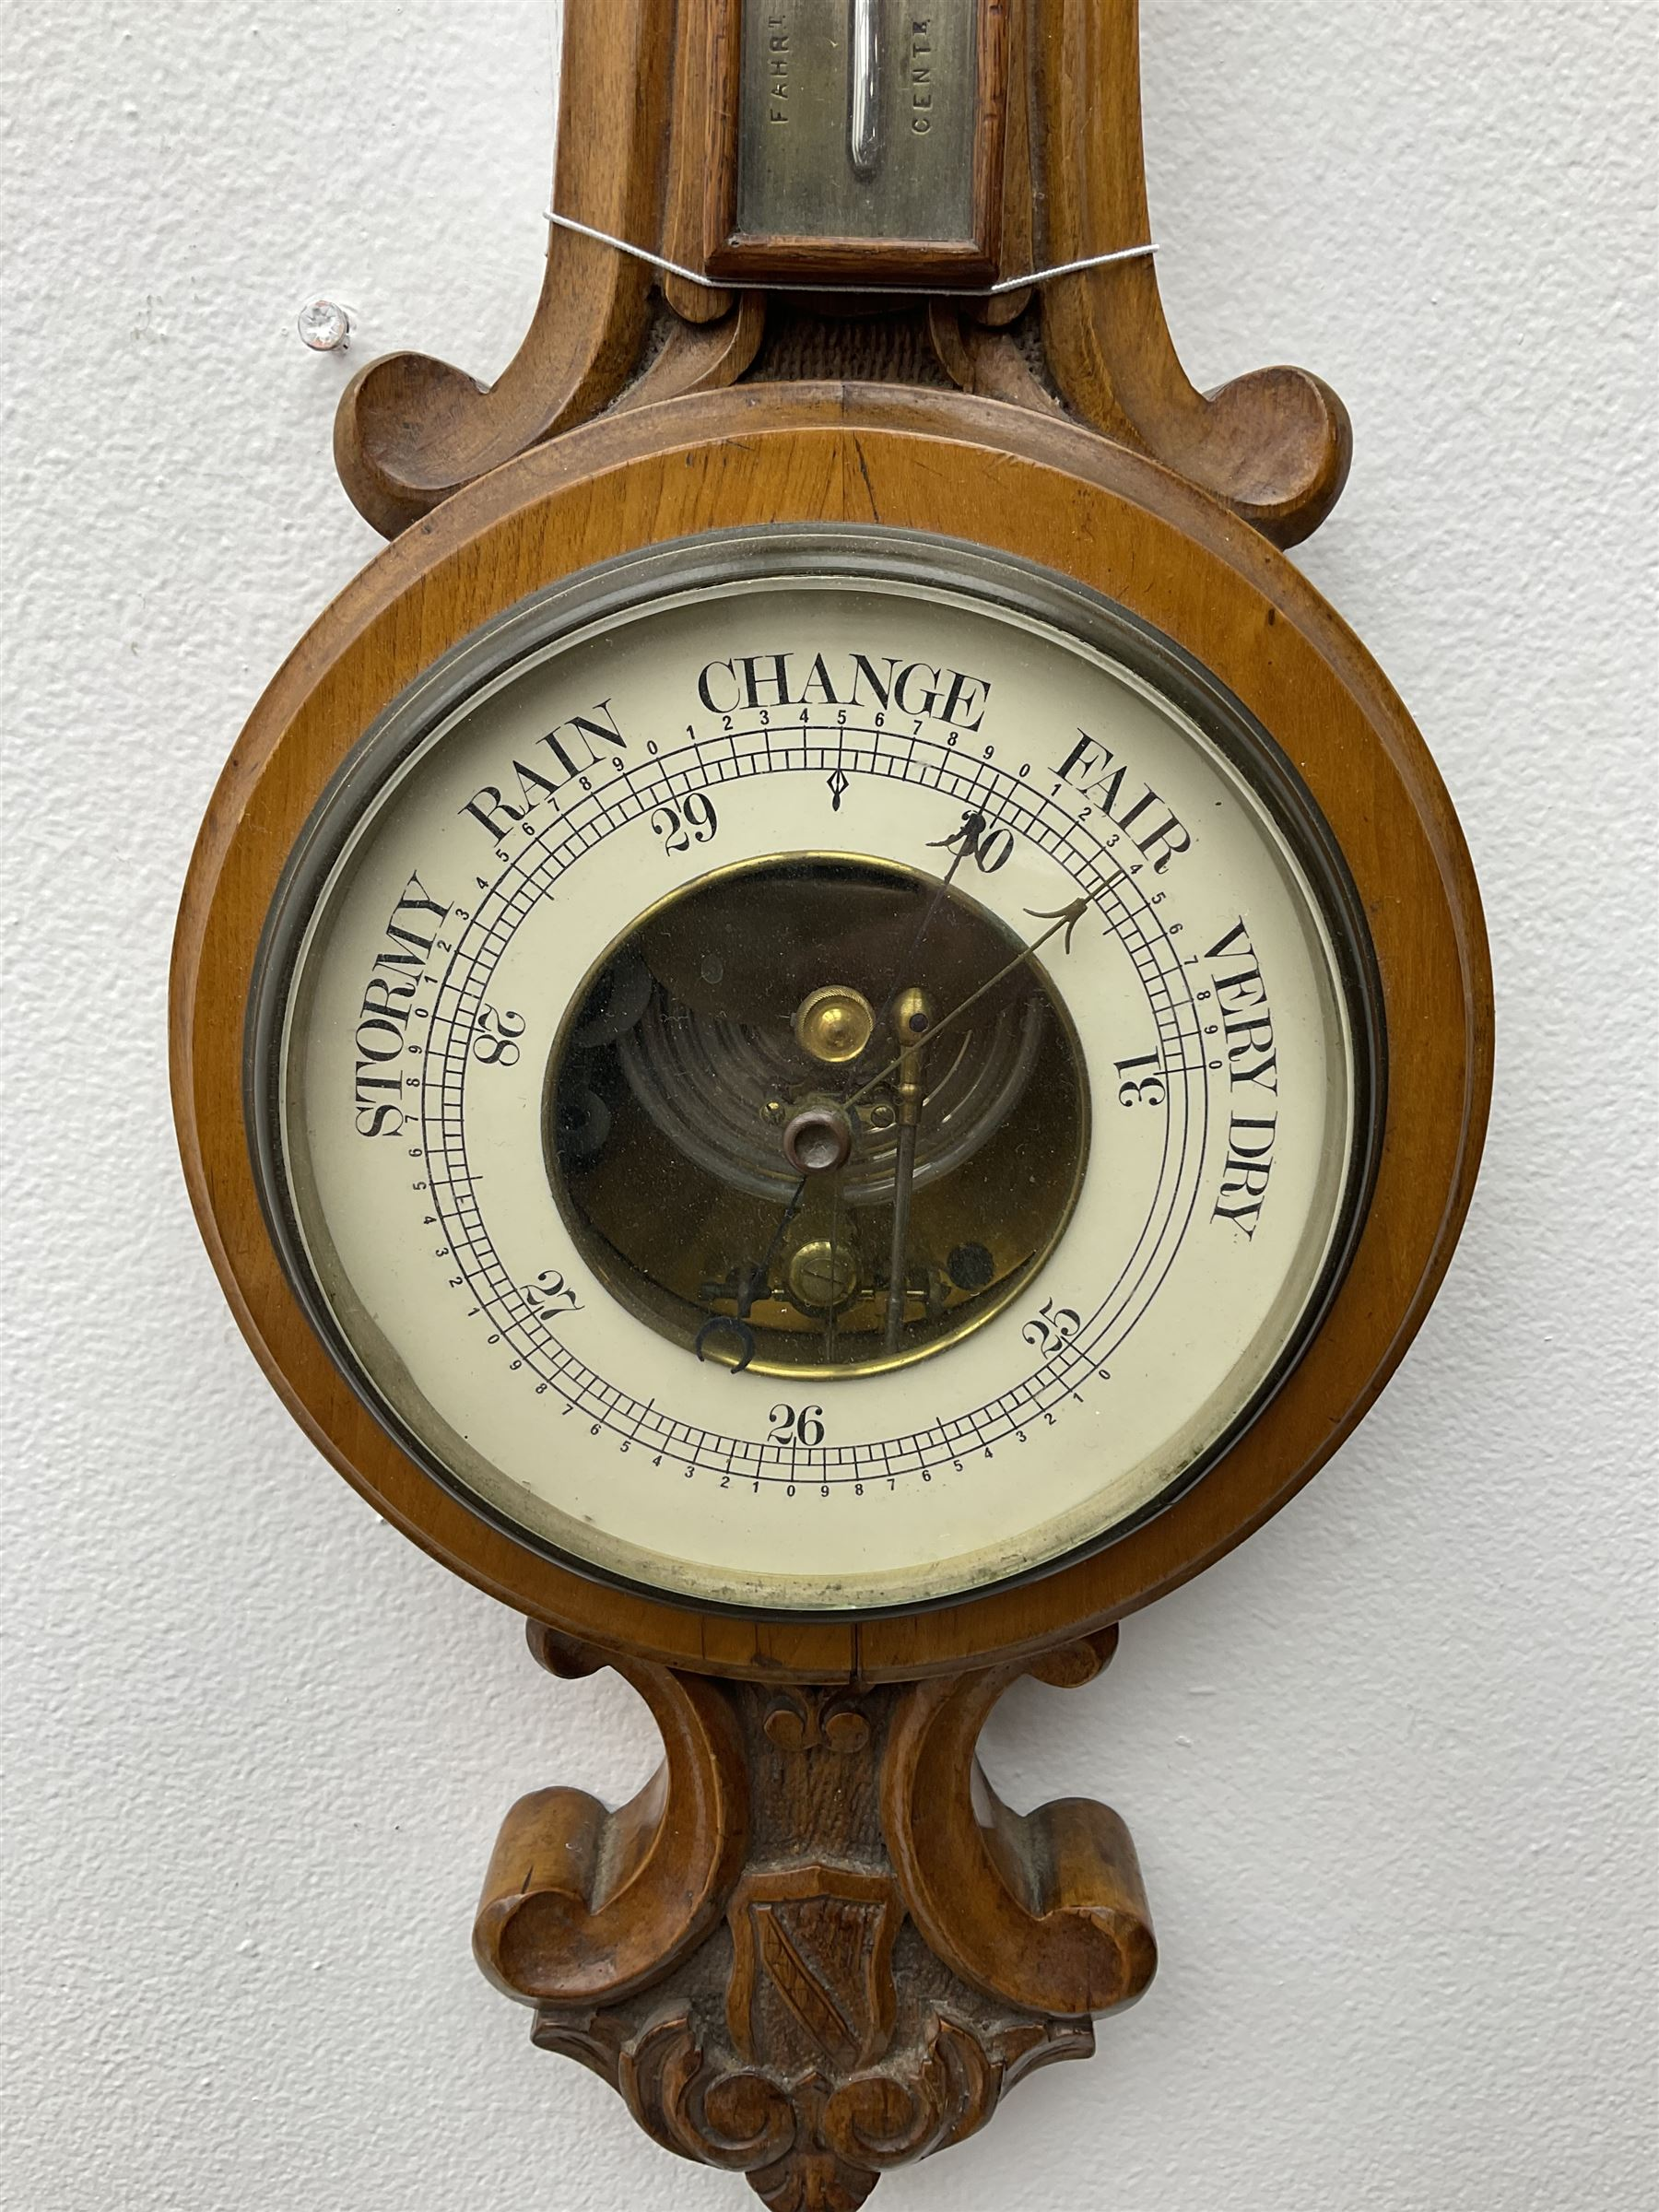 Early 20th century walnut cased aneroid barometer - Image 2 of 3